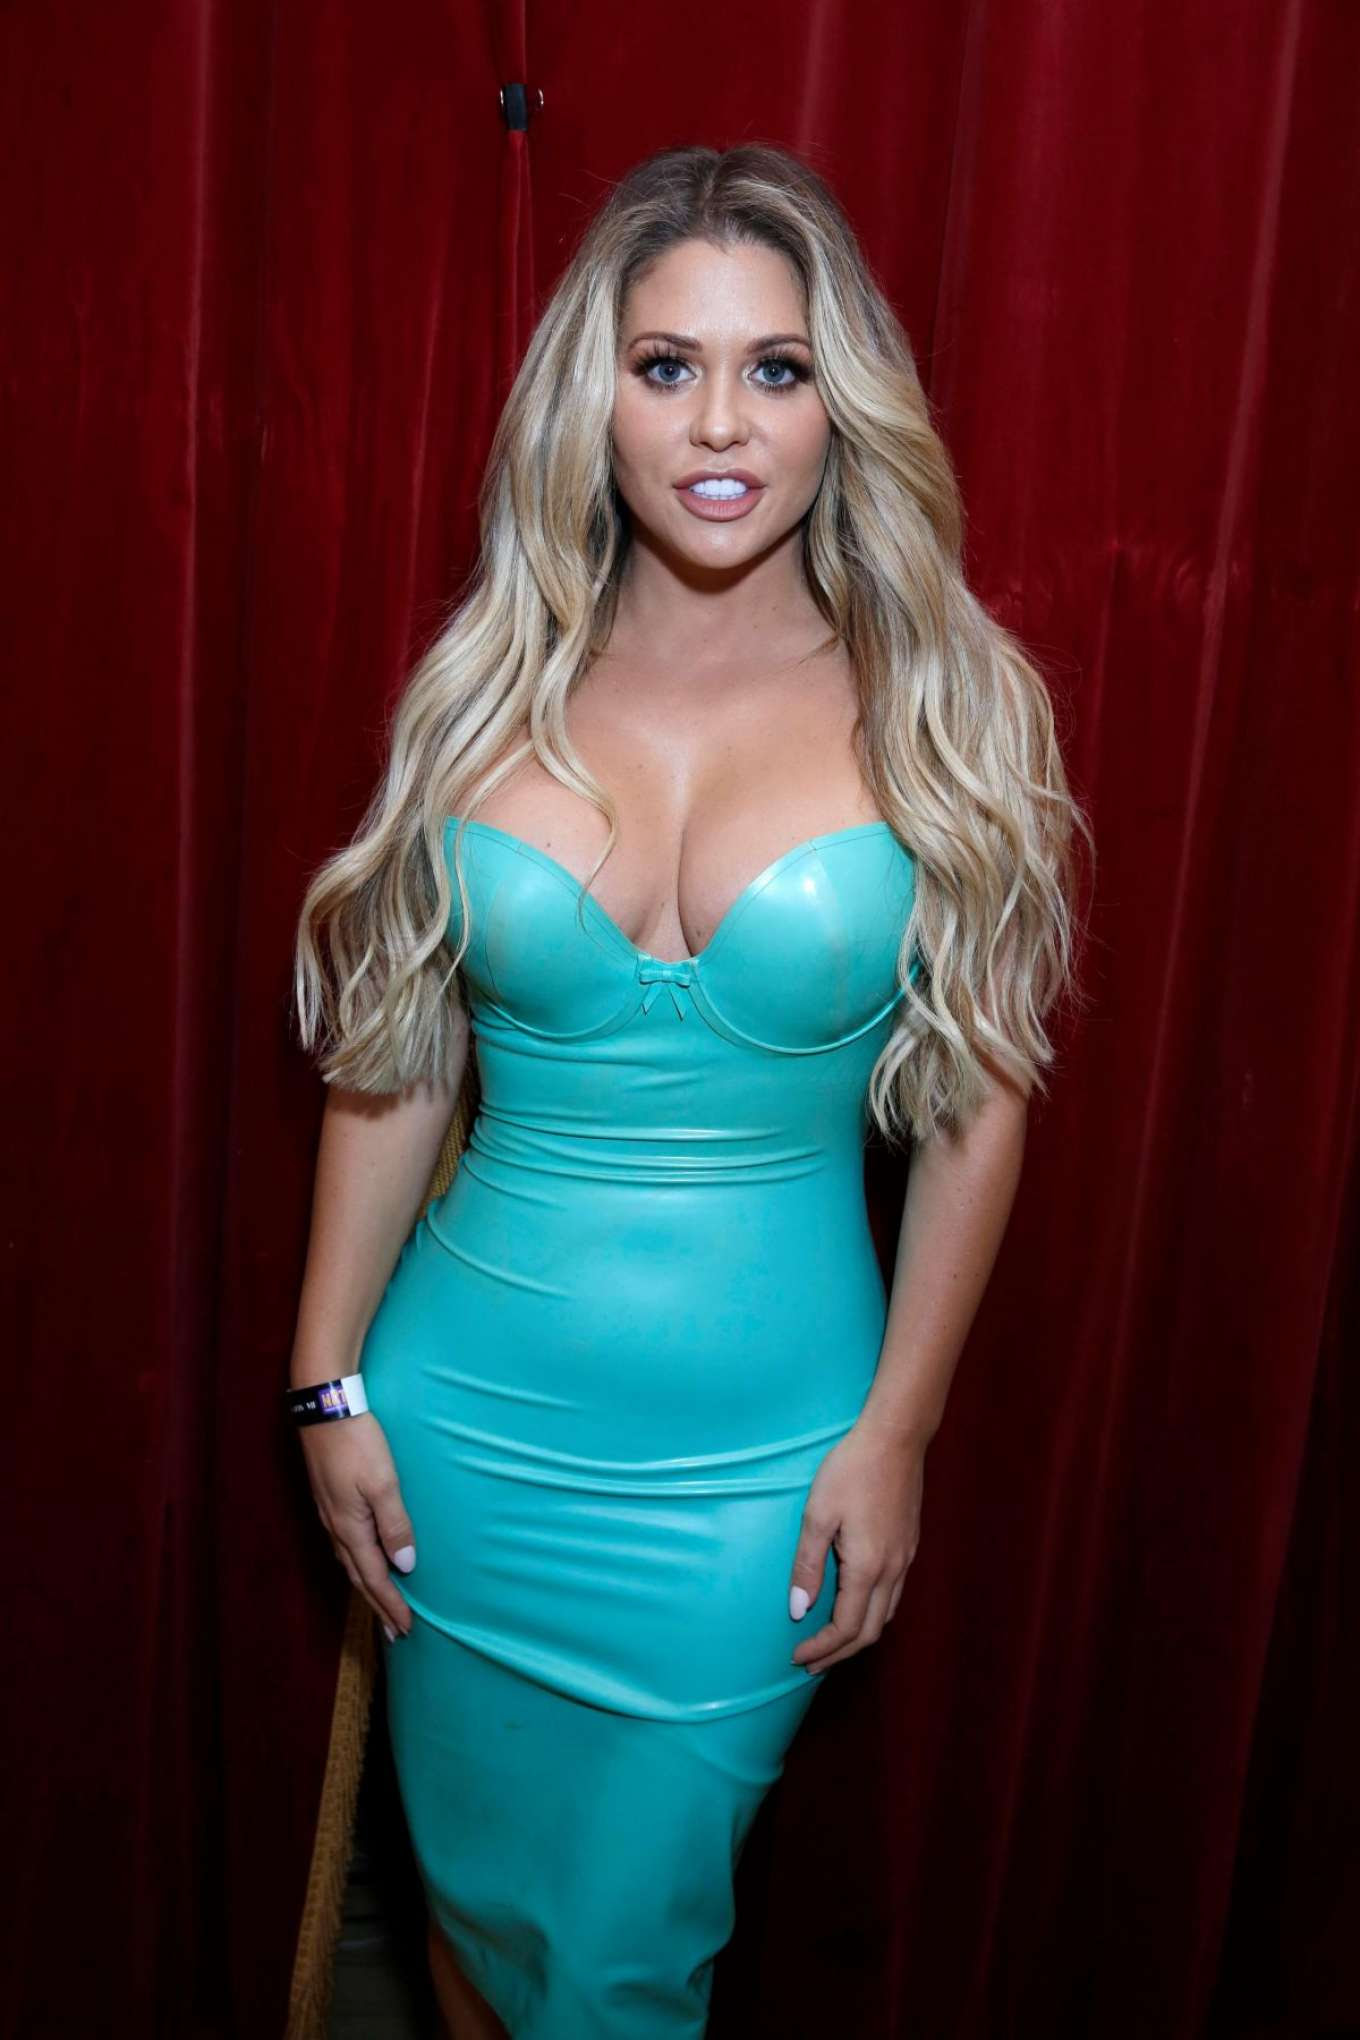 Bianca Gascoigne – 2018 National Reality TV Awards in London | Indian Girls Villa - Celebs Beauty, Fashion and Entertainment